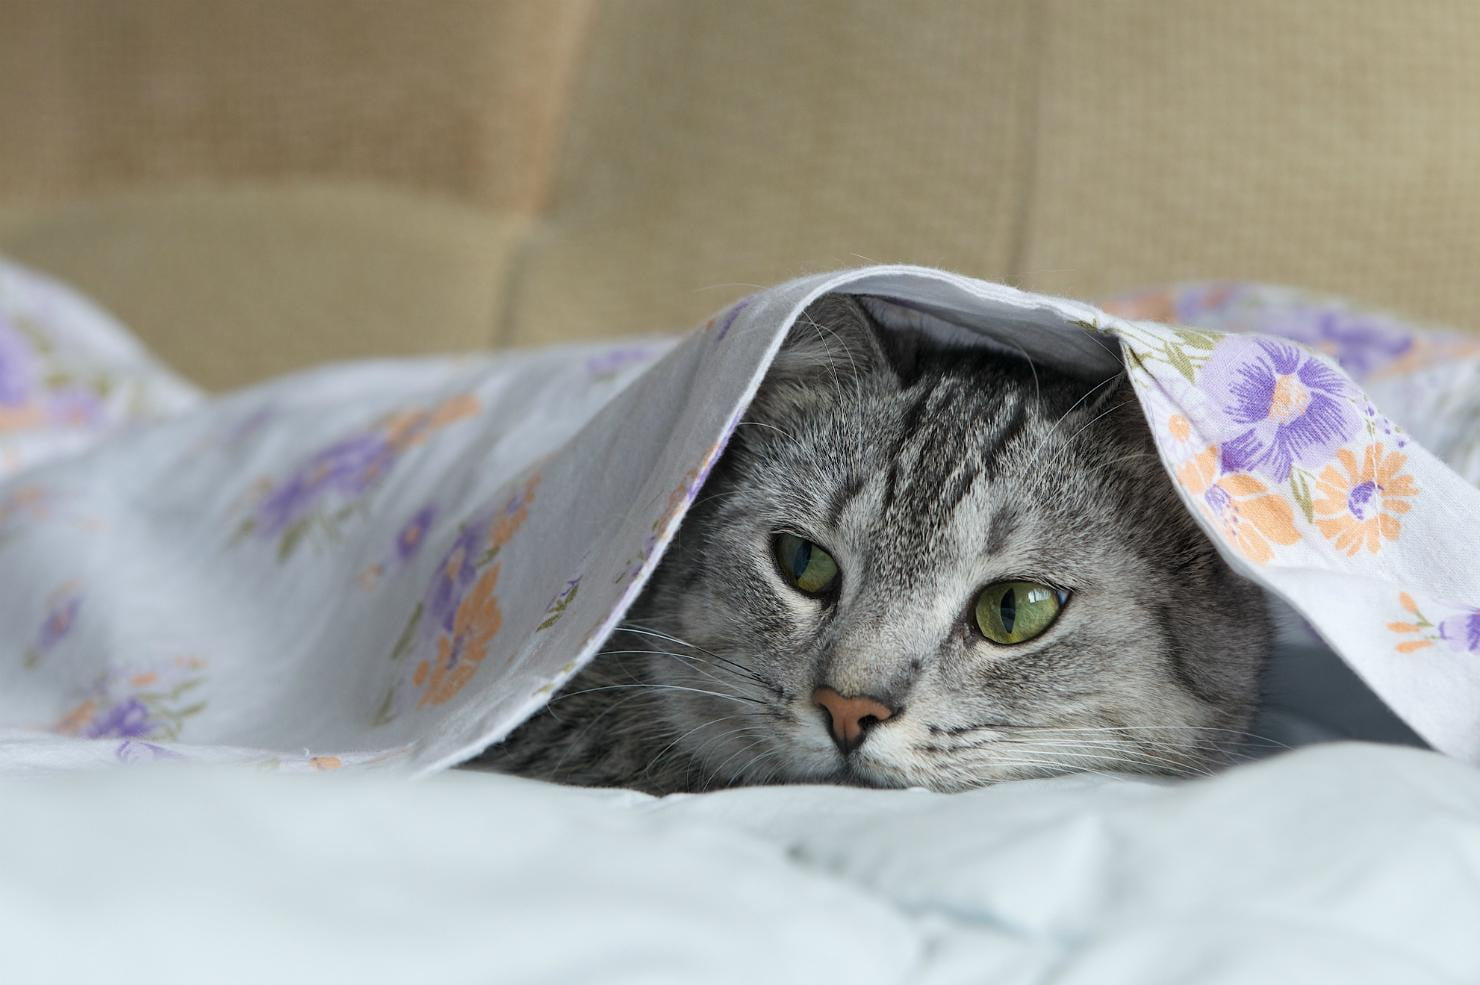 Can Cats Get Sick From Bed Bugs